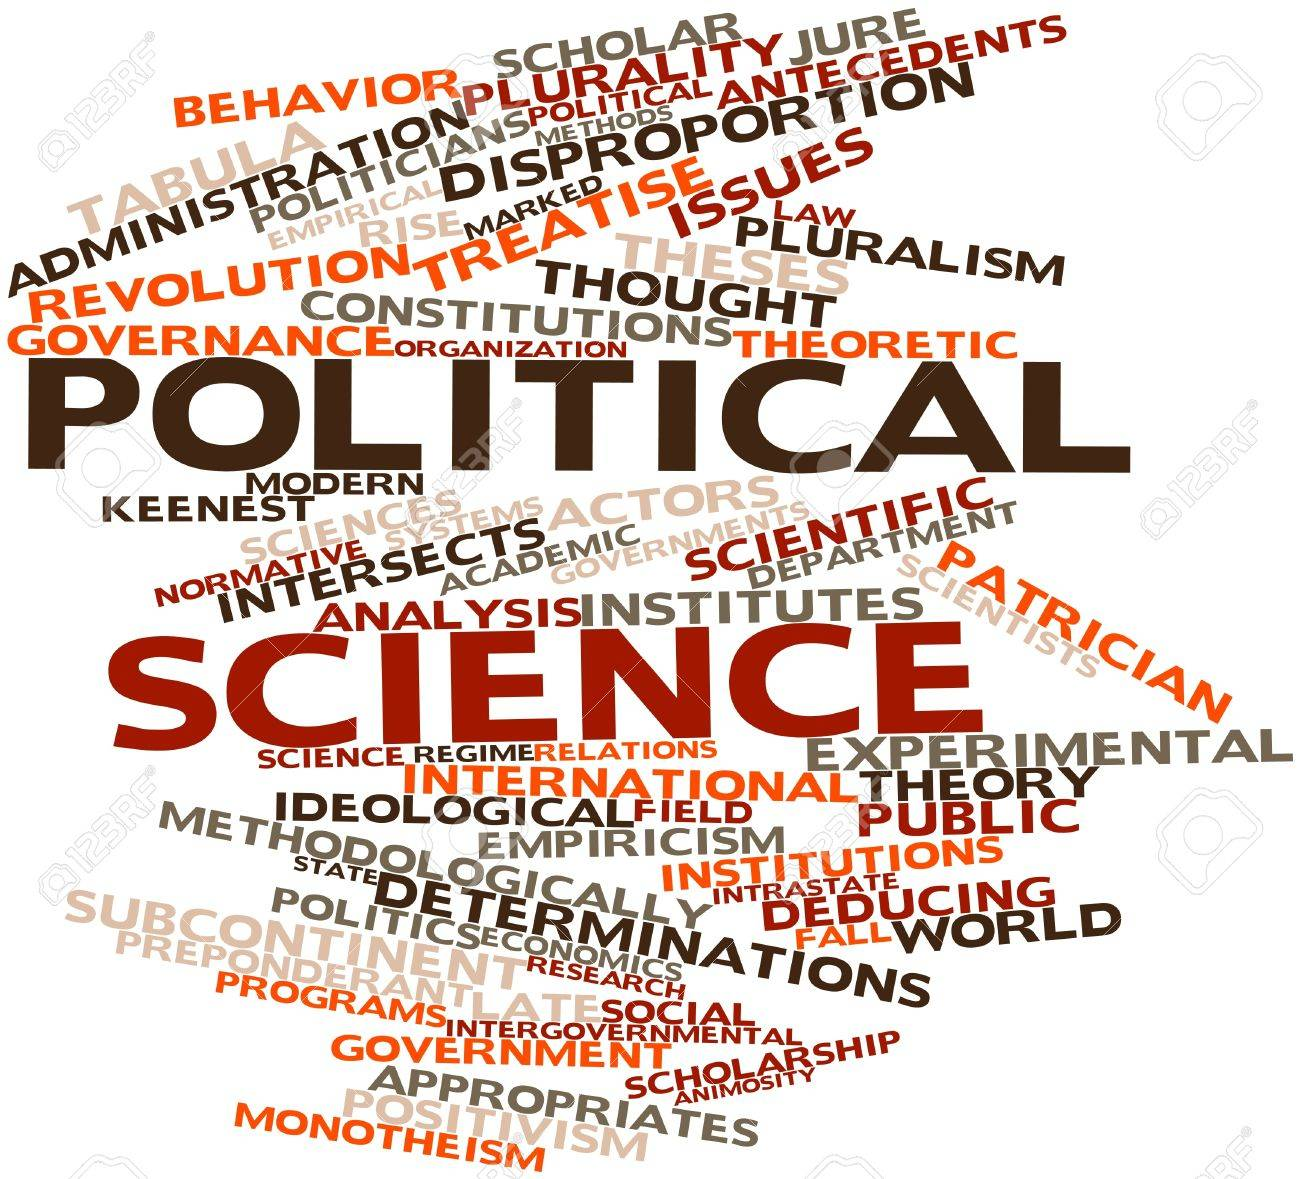 politics dissertation help Get started choose and answer one of the questions listed below 1) what approach should a polity take when balancing between the demands of political obedience and citizenship on the one hand, and the requirements of devout faith on the other.